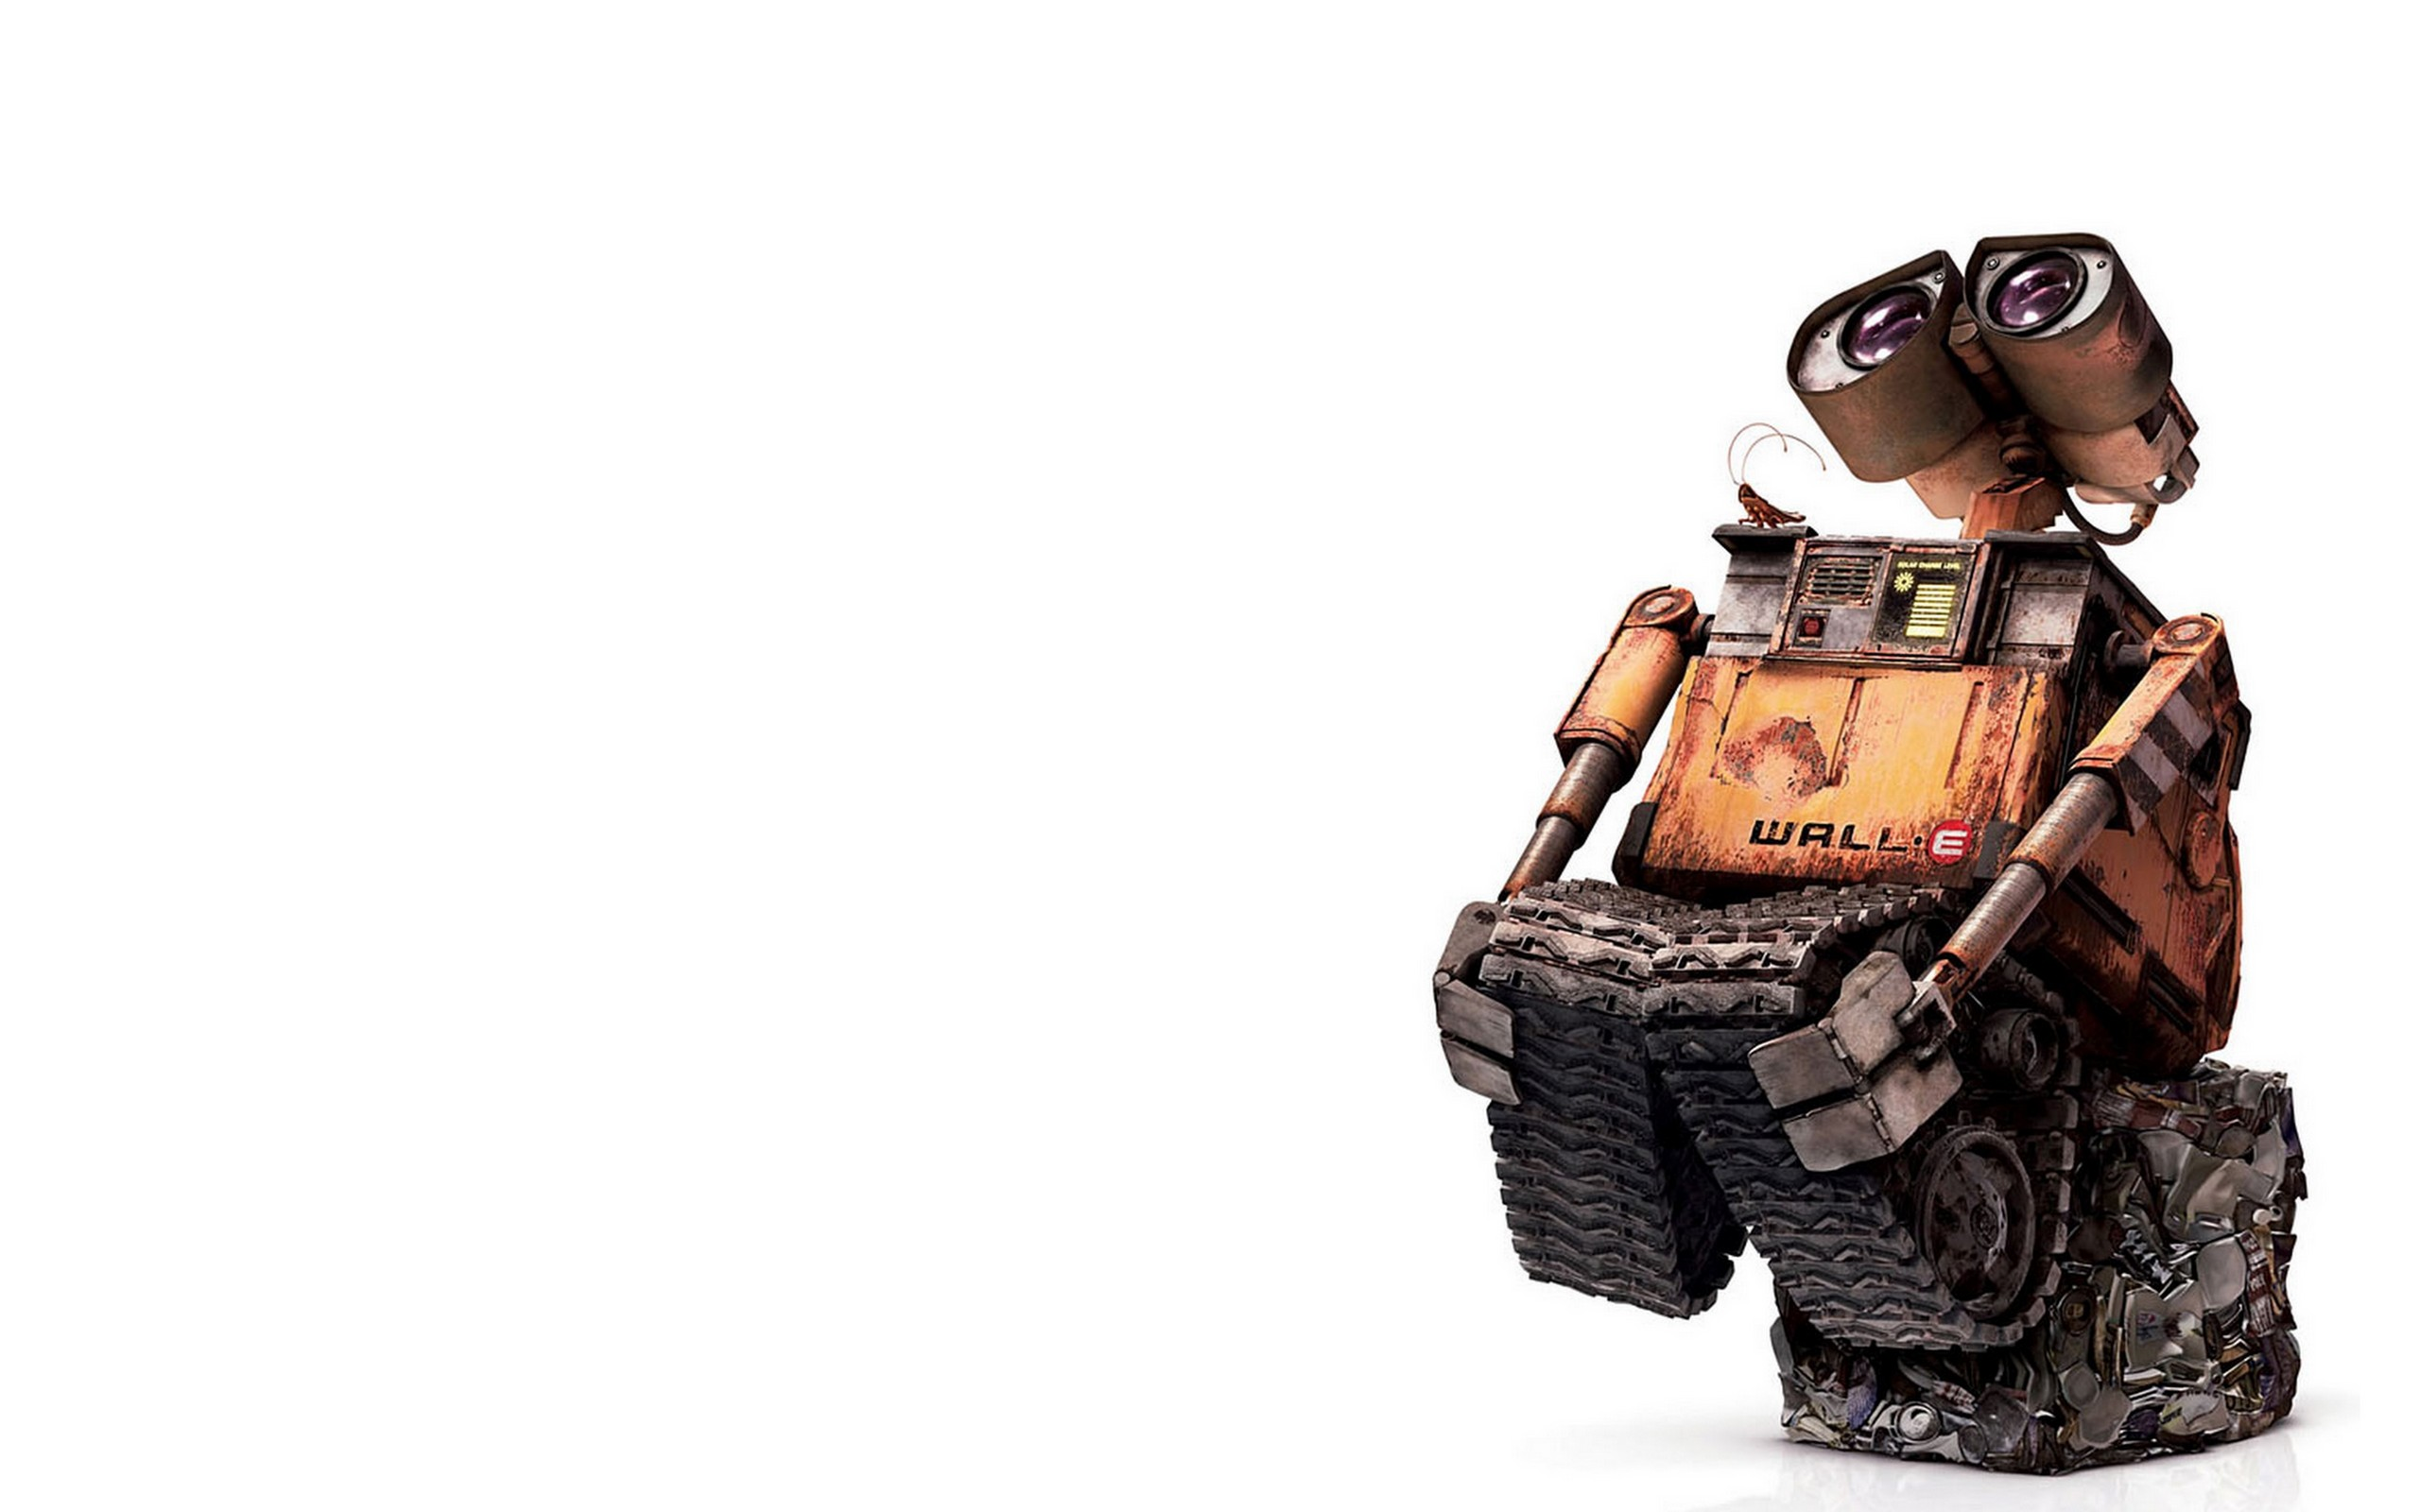 Wall-E wallpaper hd